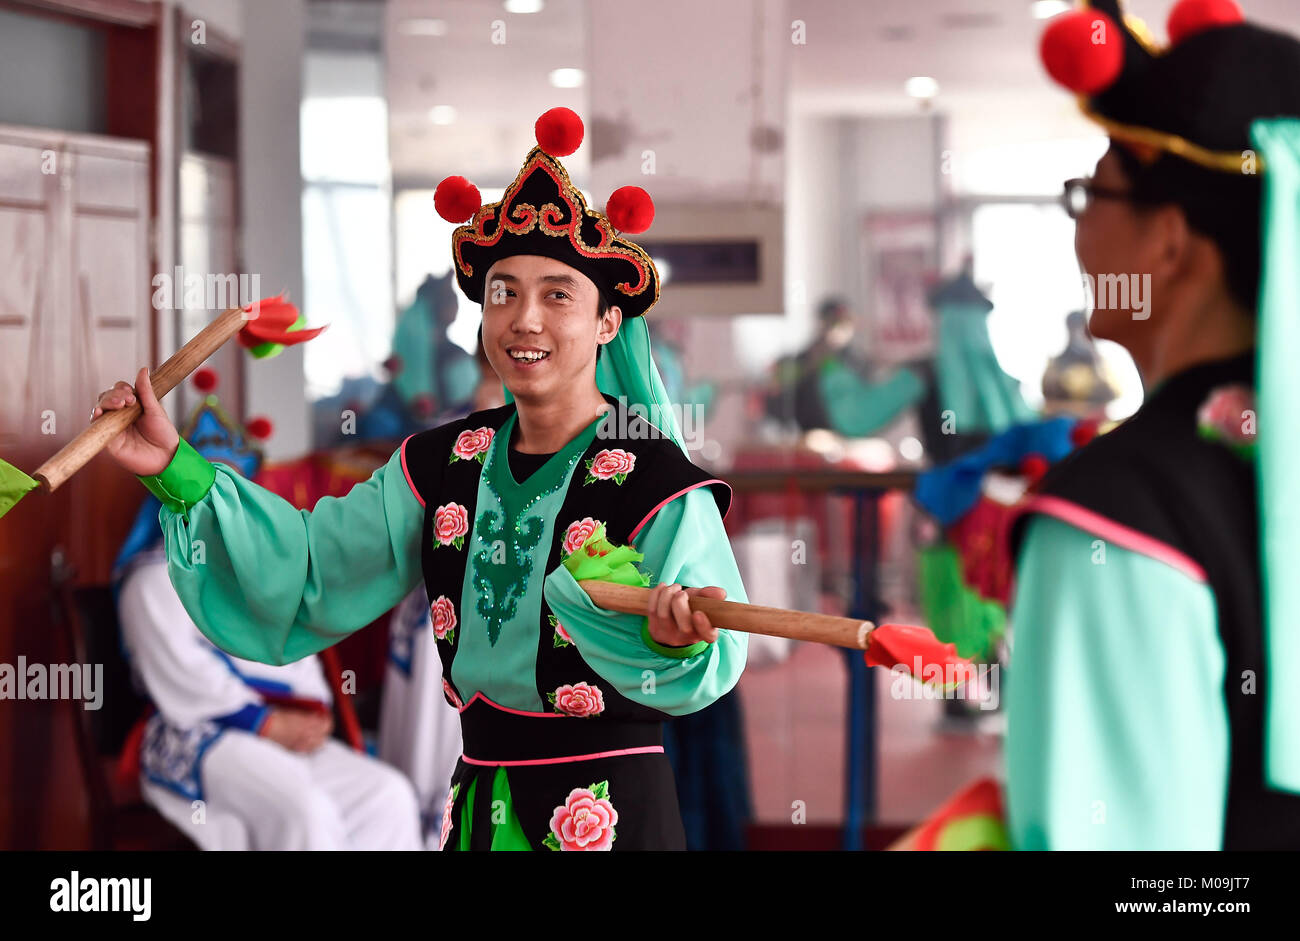 Jinan, China's Shandong Province. 19th Jan, 2018. Actors of Guzi yangge dance troupe rehearse at a culture center in Shanghe County, east China's Shandong Province, Jan. 19, 2018. Invited by the China Cultural Center in Stockholm, the troupe will participate in Spring Festival celebration events in Sweden from Feb. 9 to 14. Credit: Guo Xulei/Xinhua/Alamy Live News Stock Photo